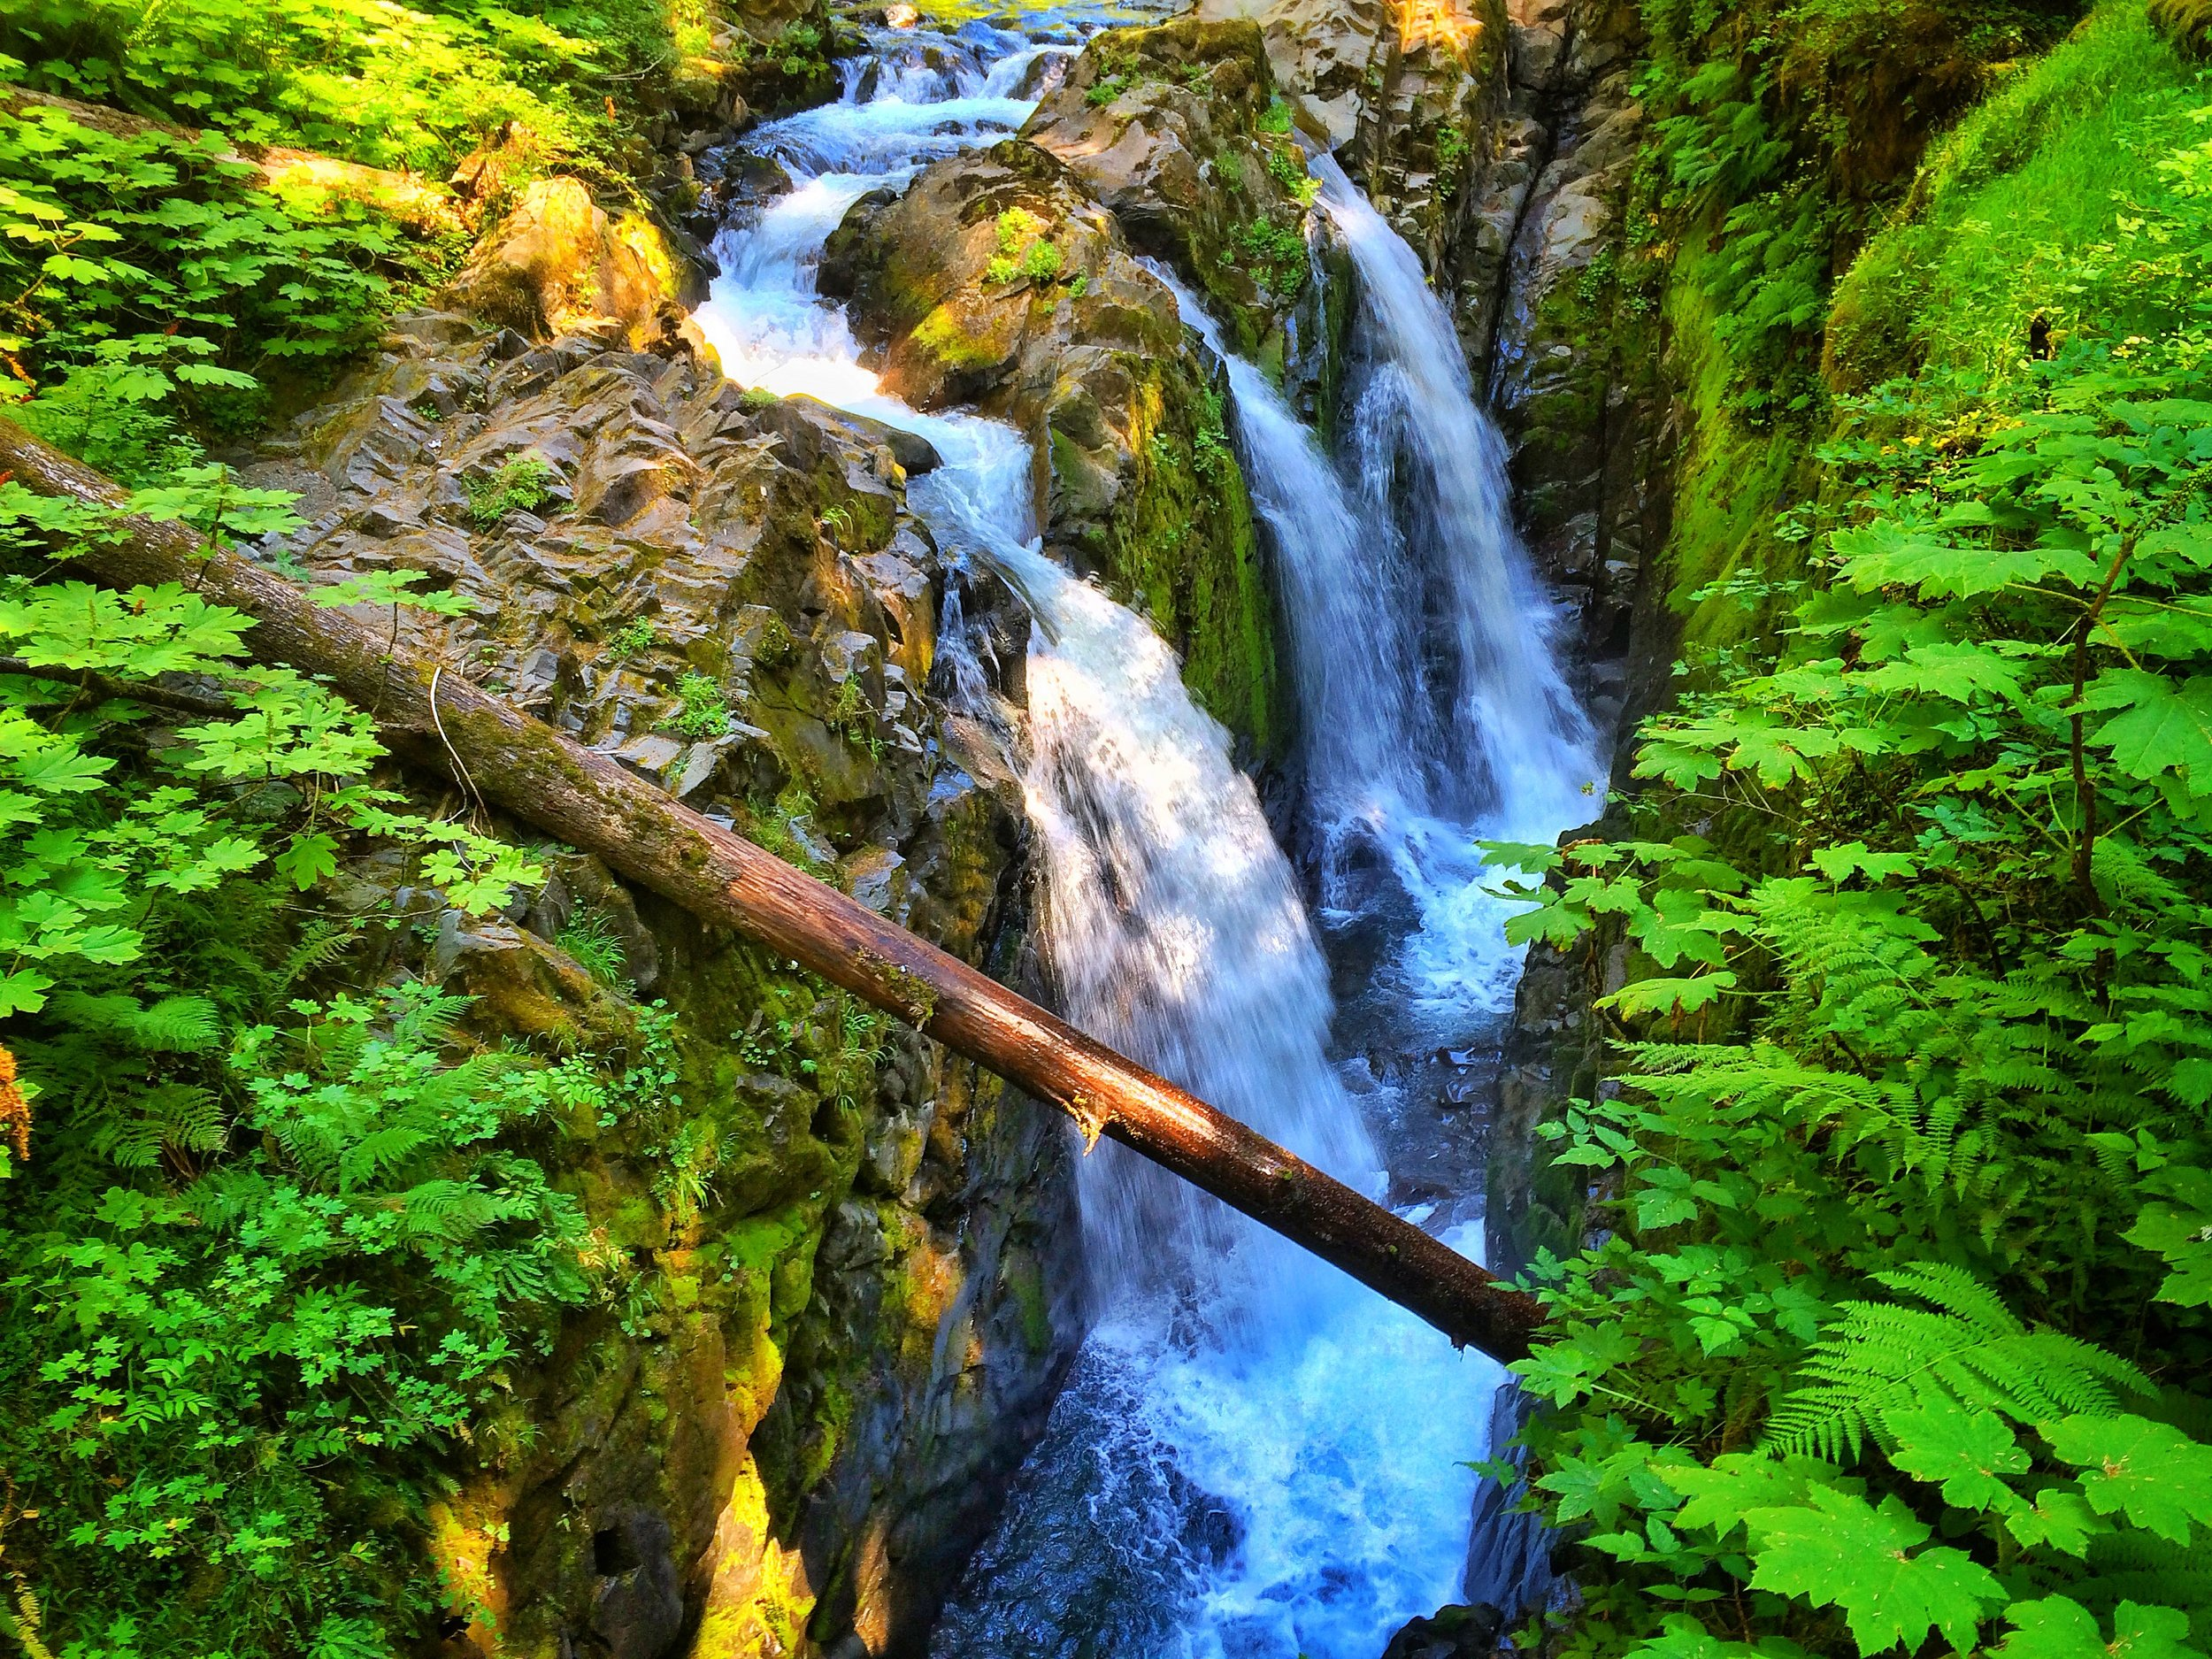 The Olympic peninsula also features some of the best waterfalls in the State of Washington, including Sol duc Falls.